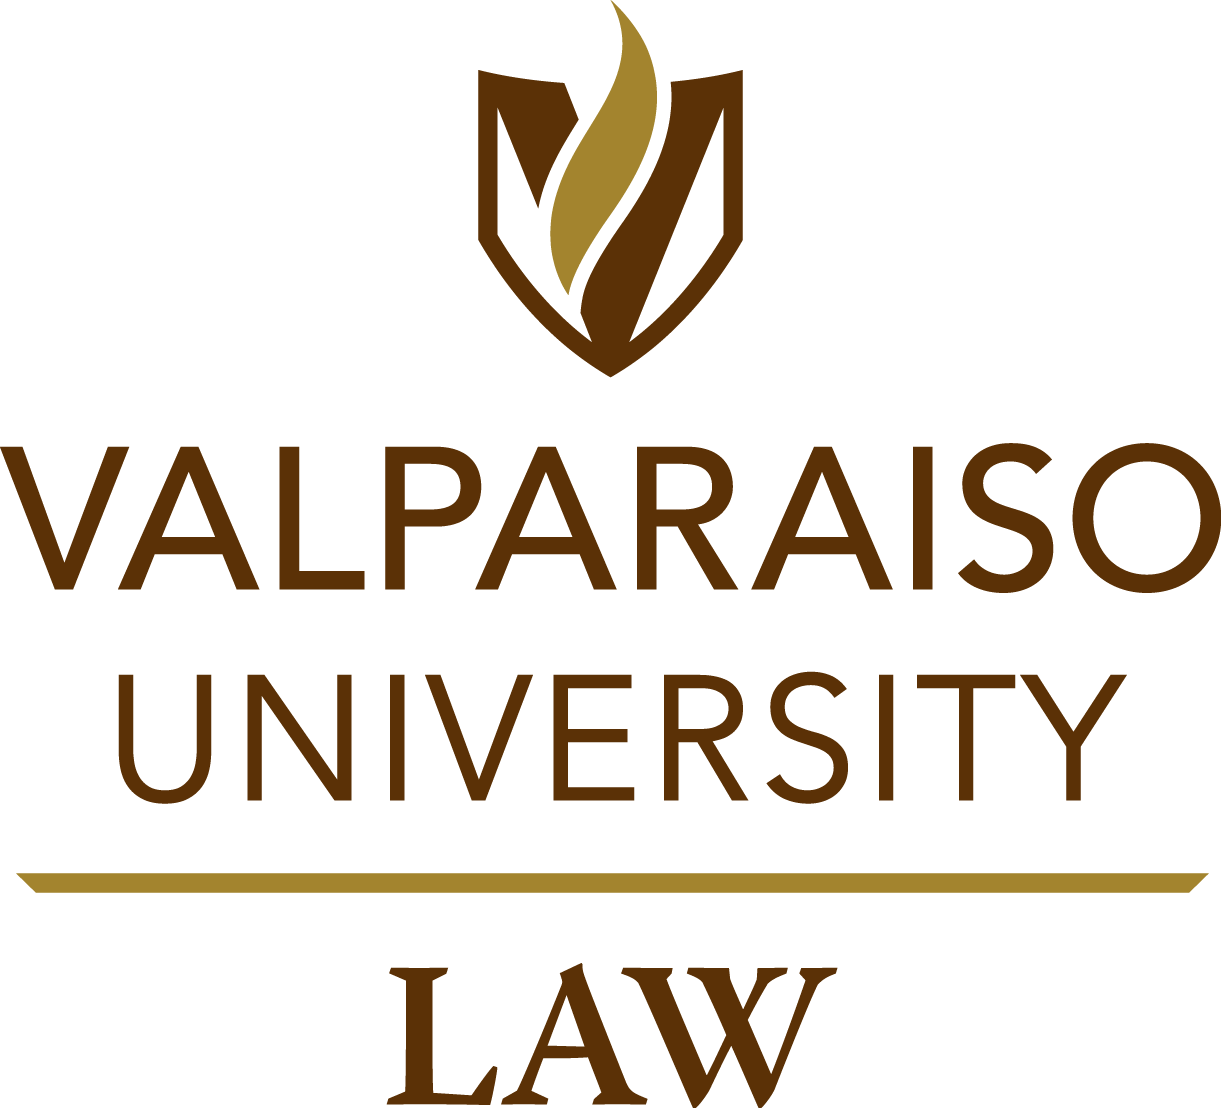 Law school png. Logos valparaiso university vertical